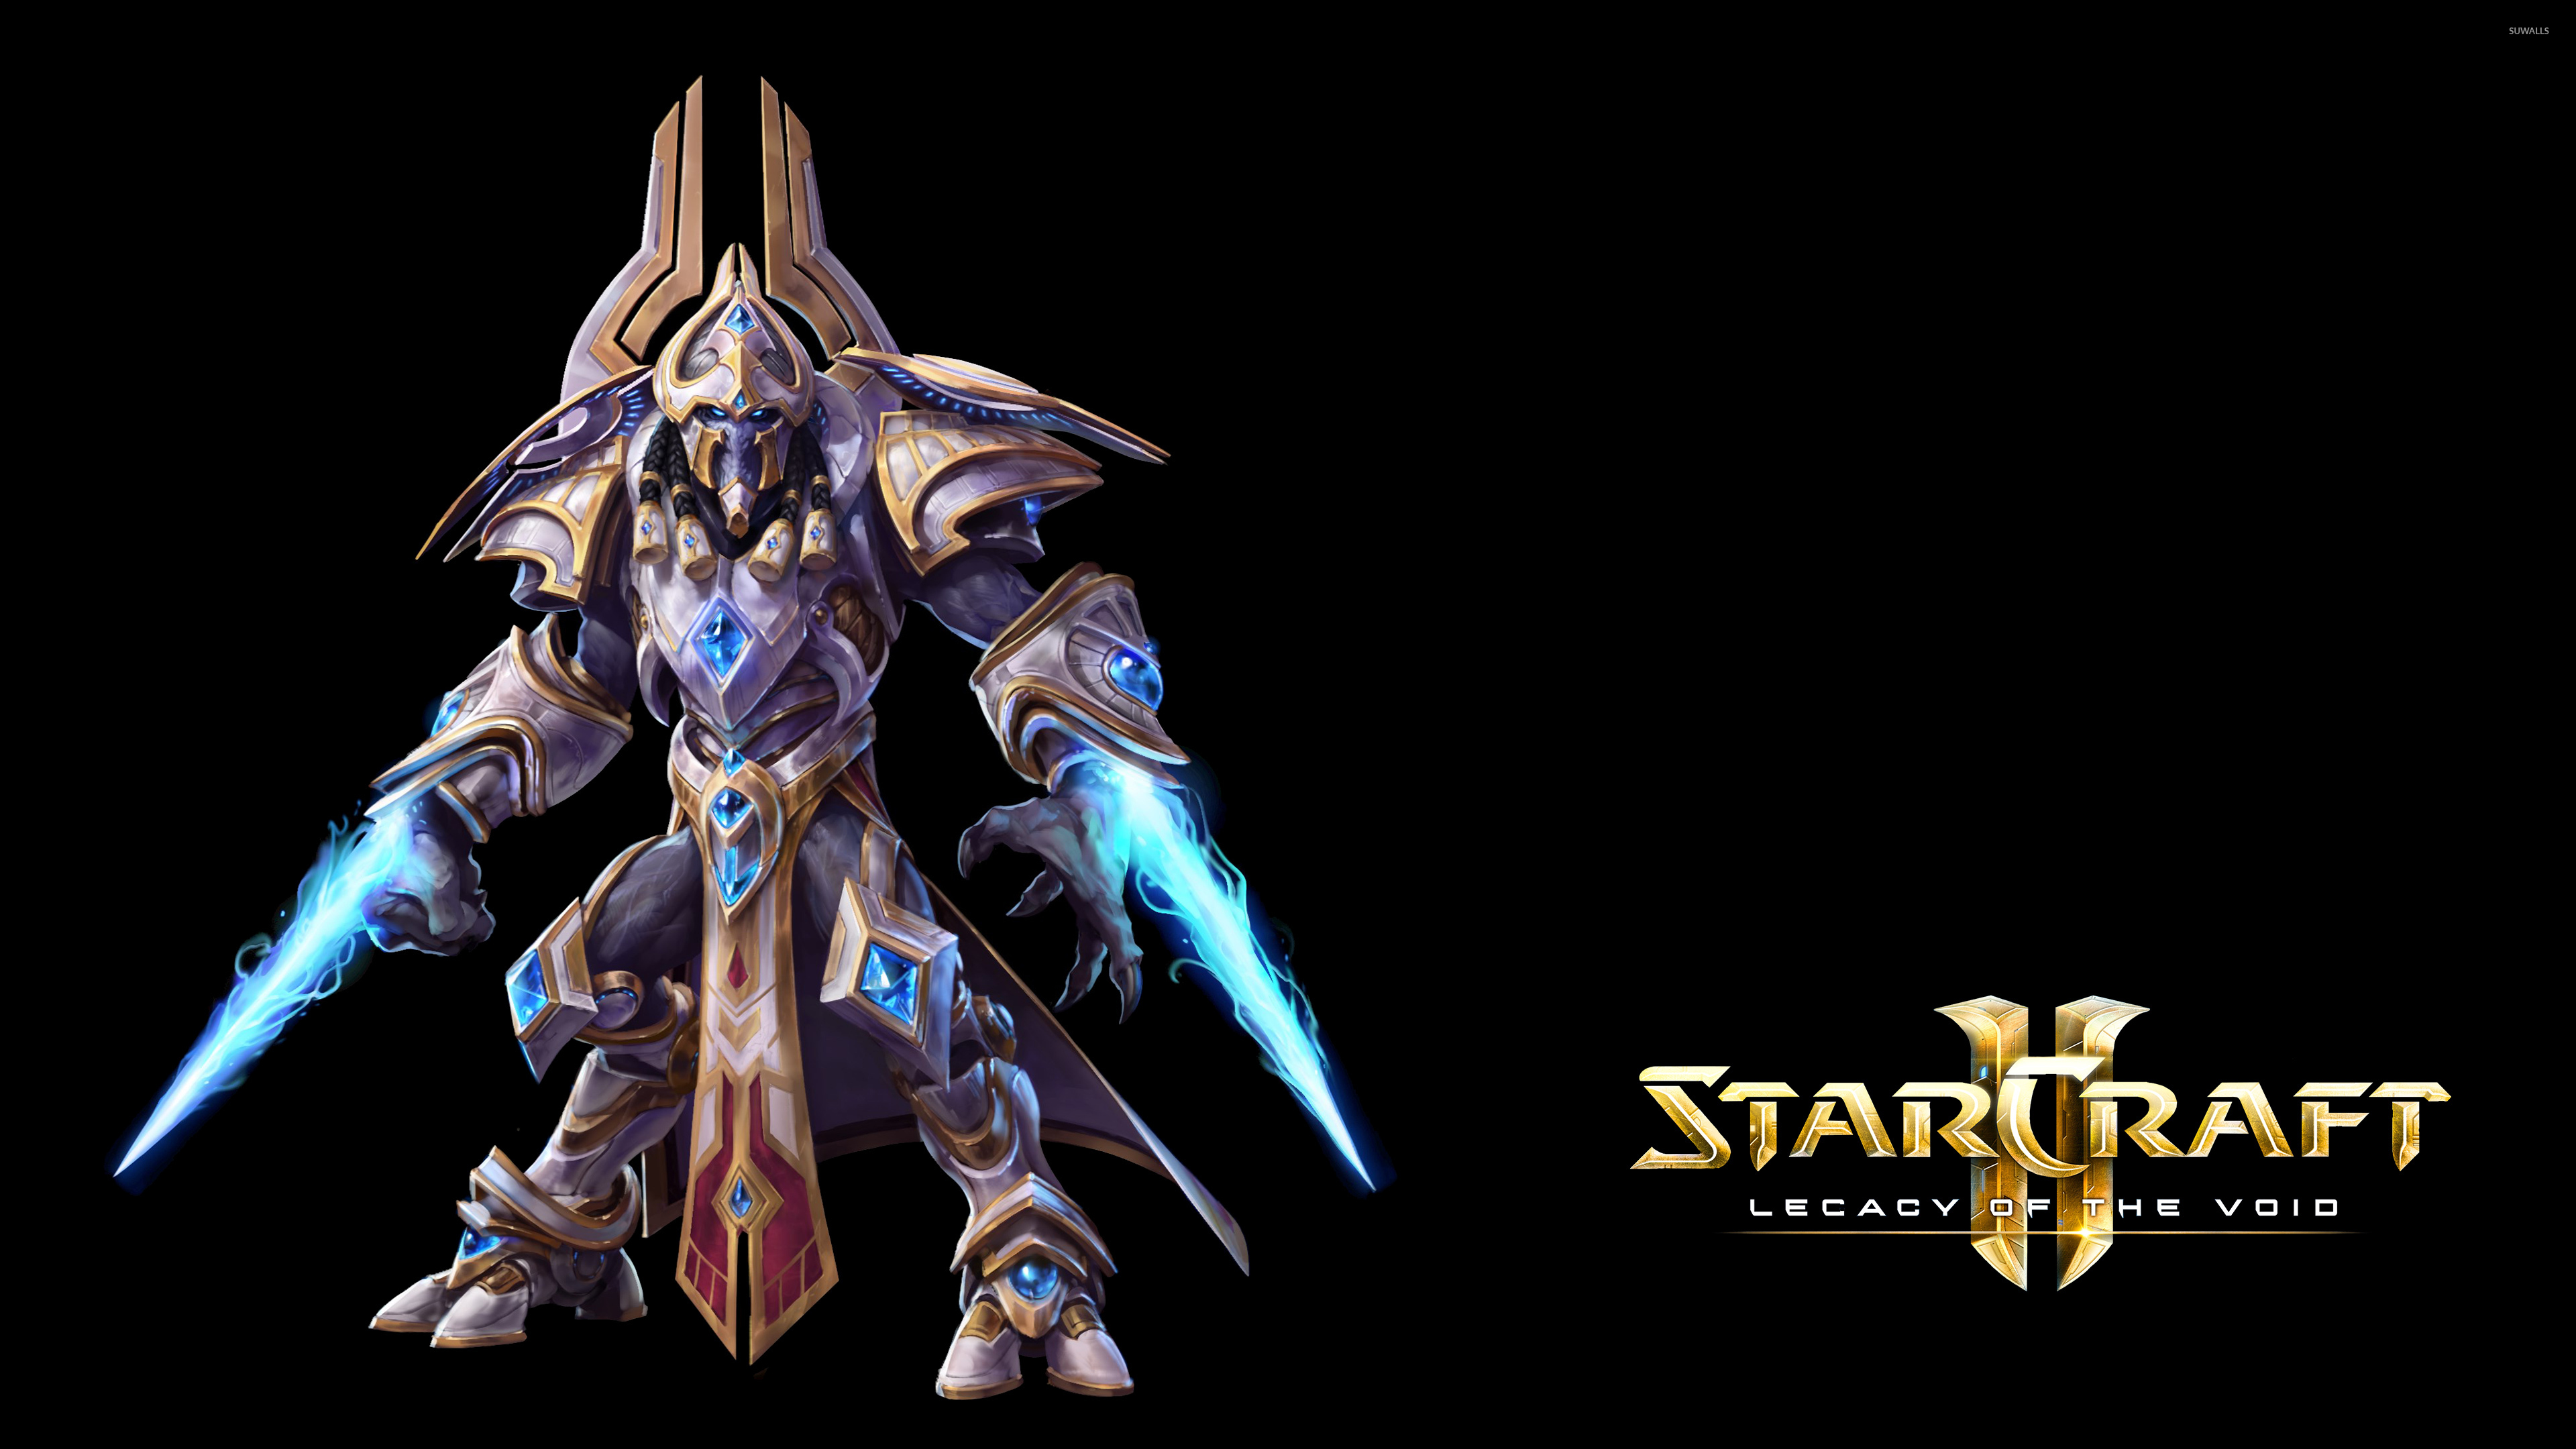 hierarch artanis starcraft ii legacy of the void